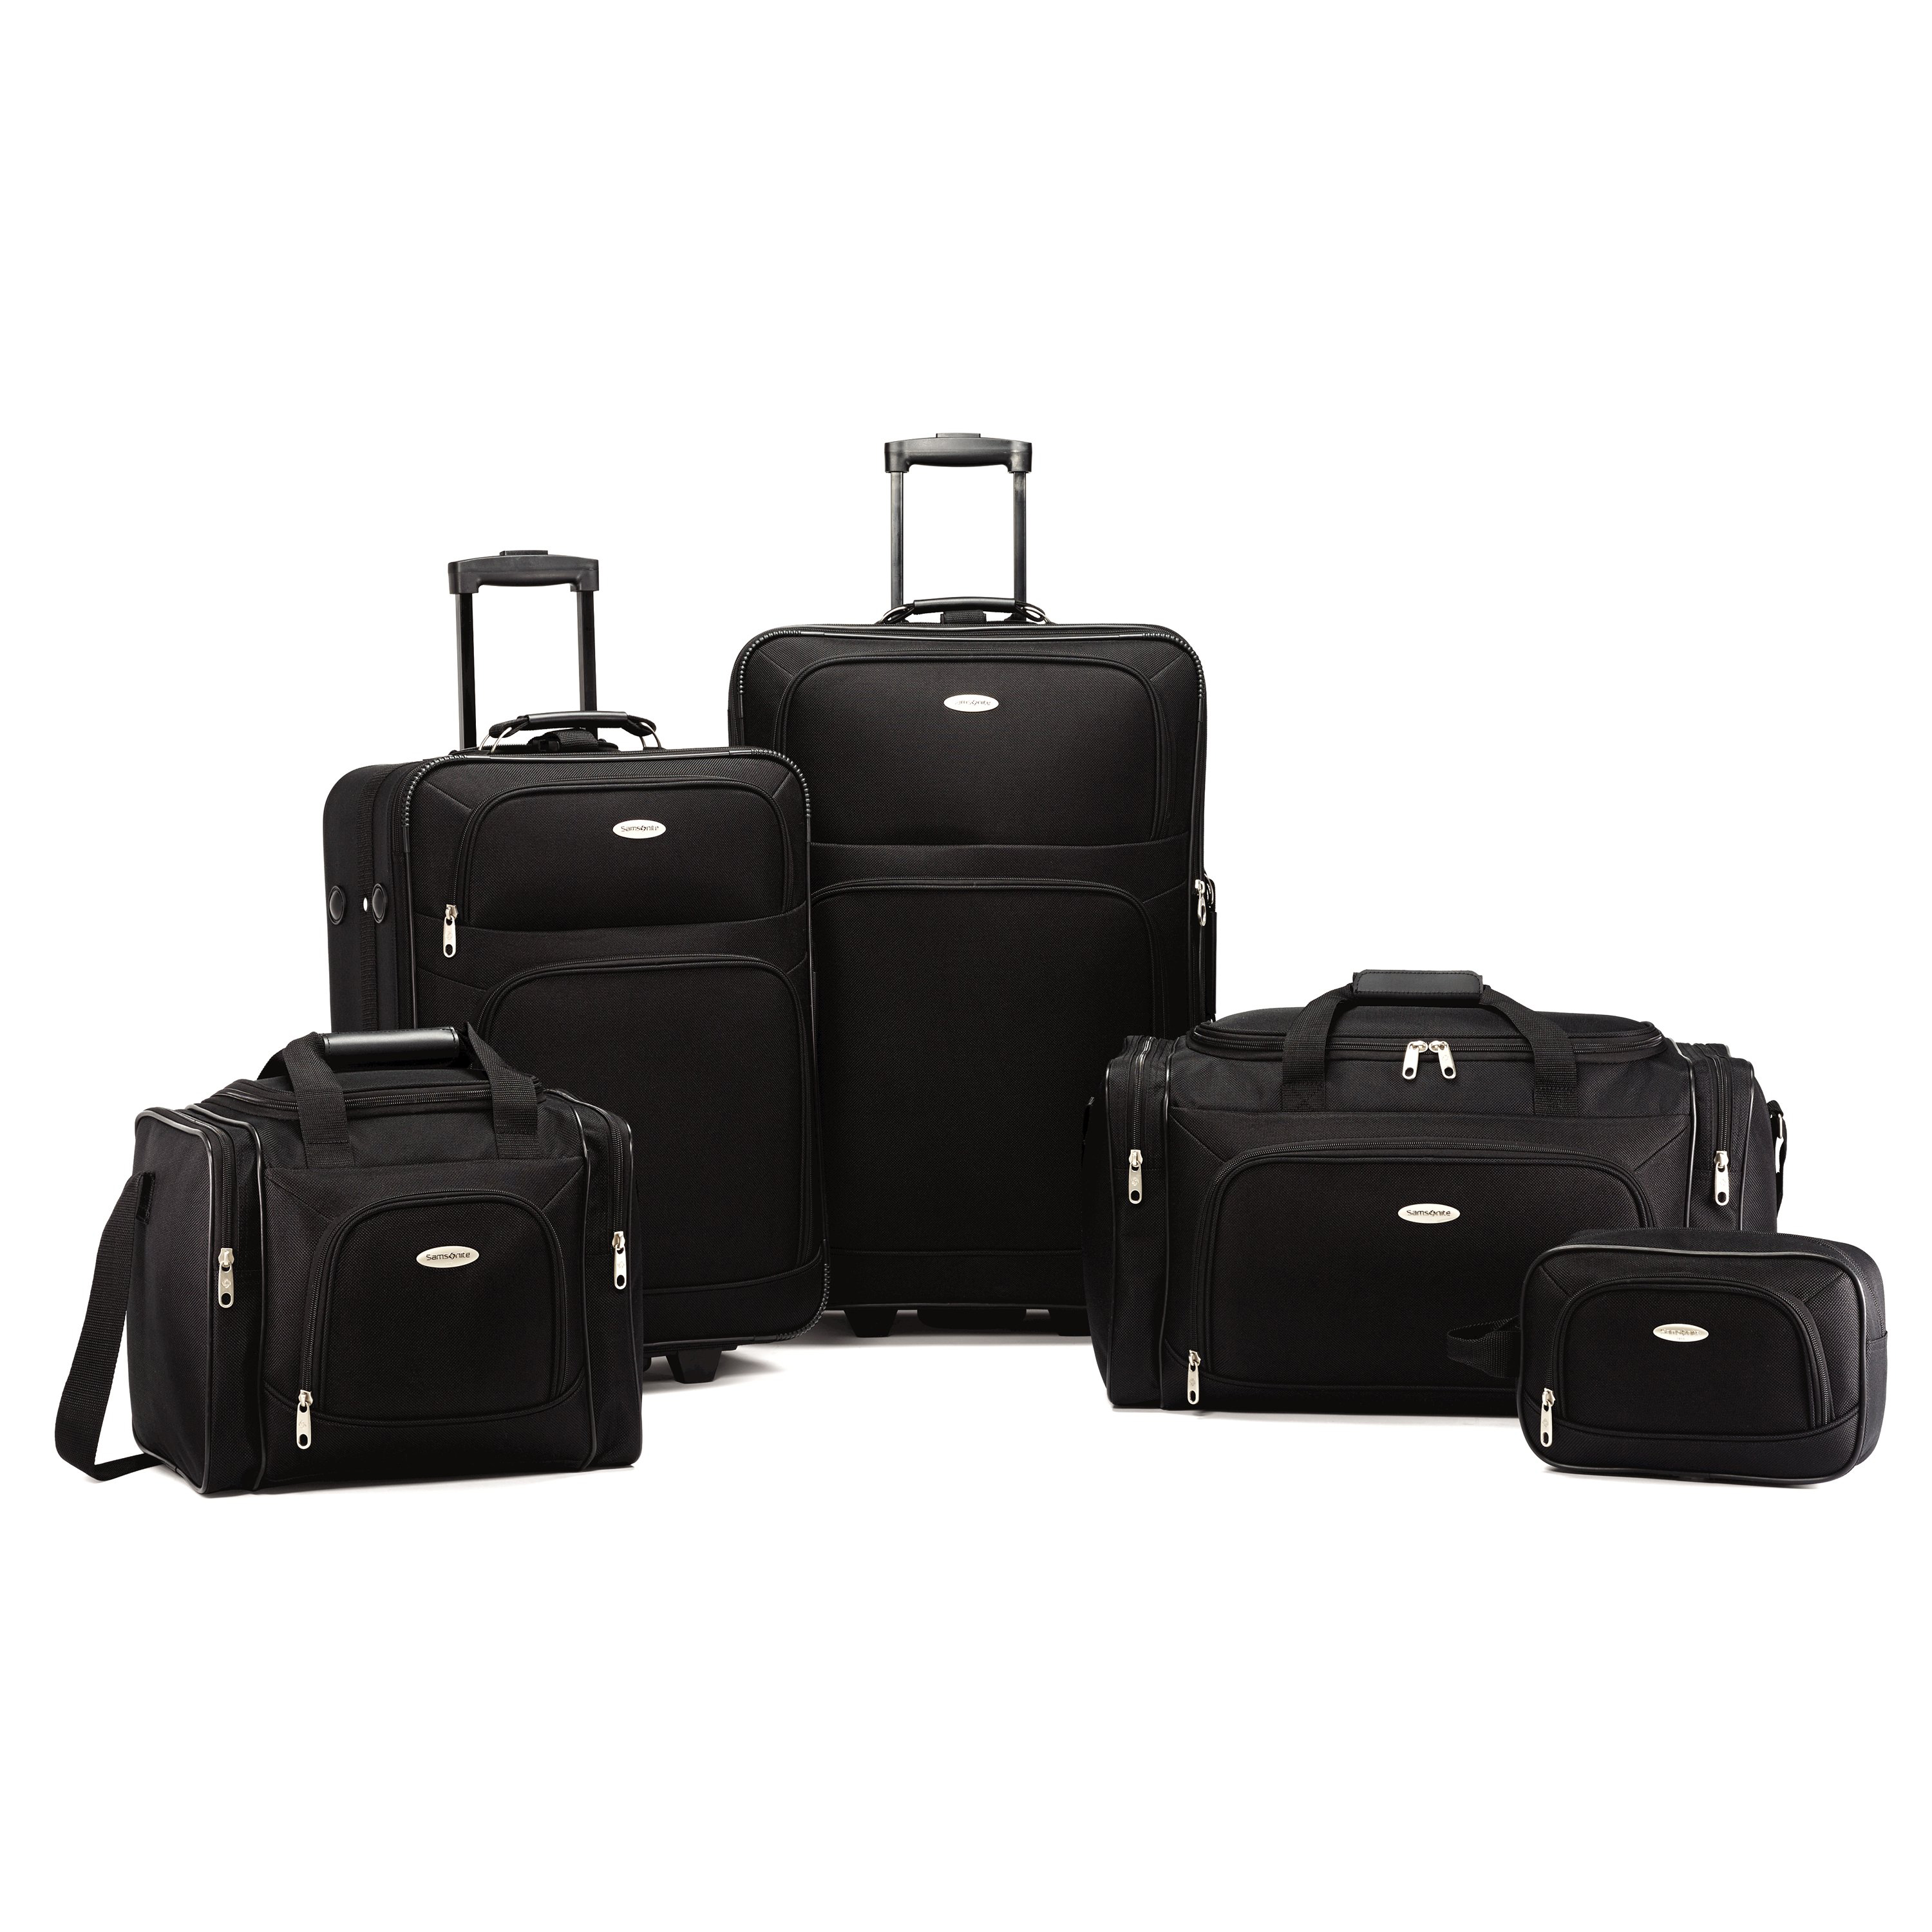 "5 pc set includes 21"" Upright (21"" x 16"" x 9"" - 7.18 lbs), 26"" Upright (26"" x 18"" x 10"" - 9.10 lbs), 23"" Duffel (22.5"" x 12"" x 12"" - 2.46 lbs.), Boarding Bag (15"" x 11.5"" x 10.5"" - 1.76 lbs.) and Toiletry kit (10.5"" x 7"" x 4.5"" - .5 lbs.). Made with 1200D rugged polyester. Padded, carry handles provide comfort when lifting a fully packed case. Large, self-mending coil zippers provide flawless closure allow you to add a lock to protect your valuables. br>&#149' Uprights have inline-skate wheels and push button locking handle. Both the 21"" and 26"" feature an add a bag strap for easy travel. Both the boarding bag and the 23"" Duffel feature a smart sleeve that can be slid over the handle of an upright for easy transport. All pieces can be nested for easy storage when not in use. Weight: 21.0 lbs. Body Dimensions: 26.0"" x 18.0"" x 10.0""Overall Dimensions: 28.0"" x 18.0"" x 11.0"""